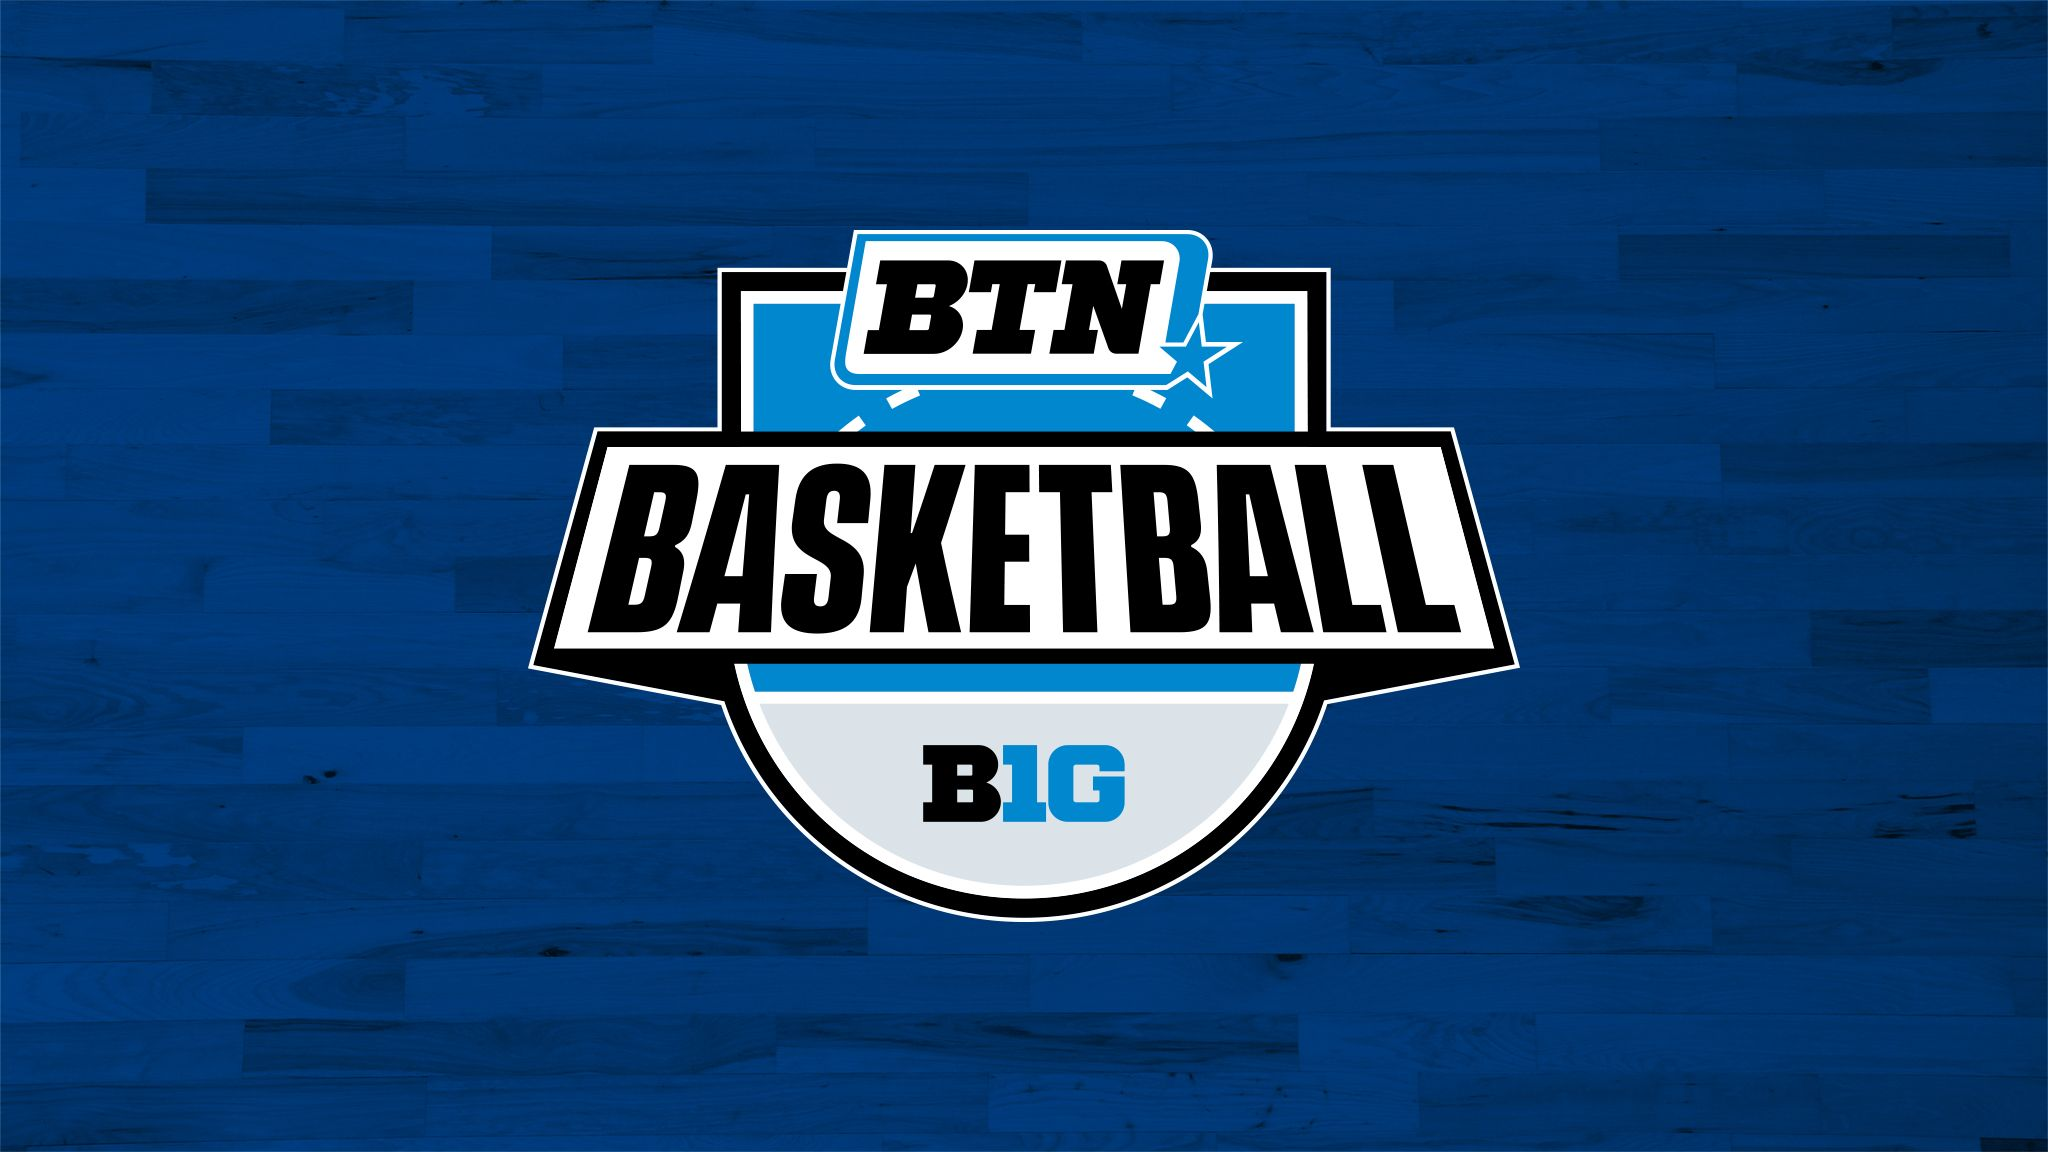 BTN Announces Men's and Women's Hoops Talent for 201920